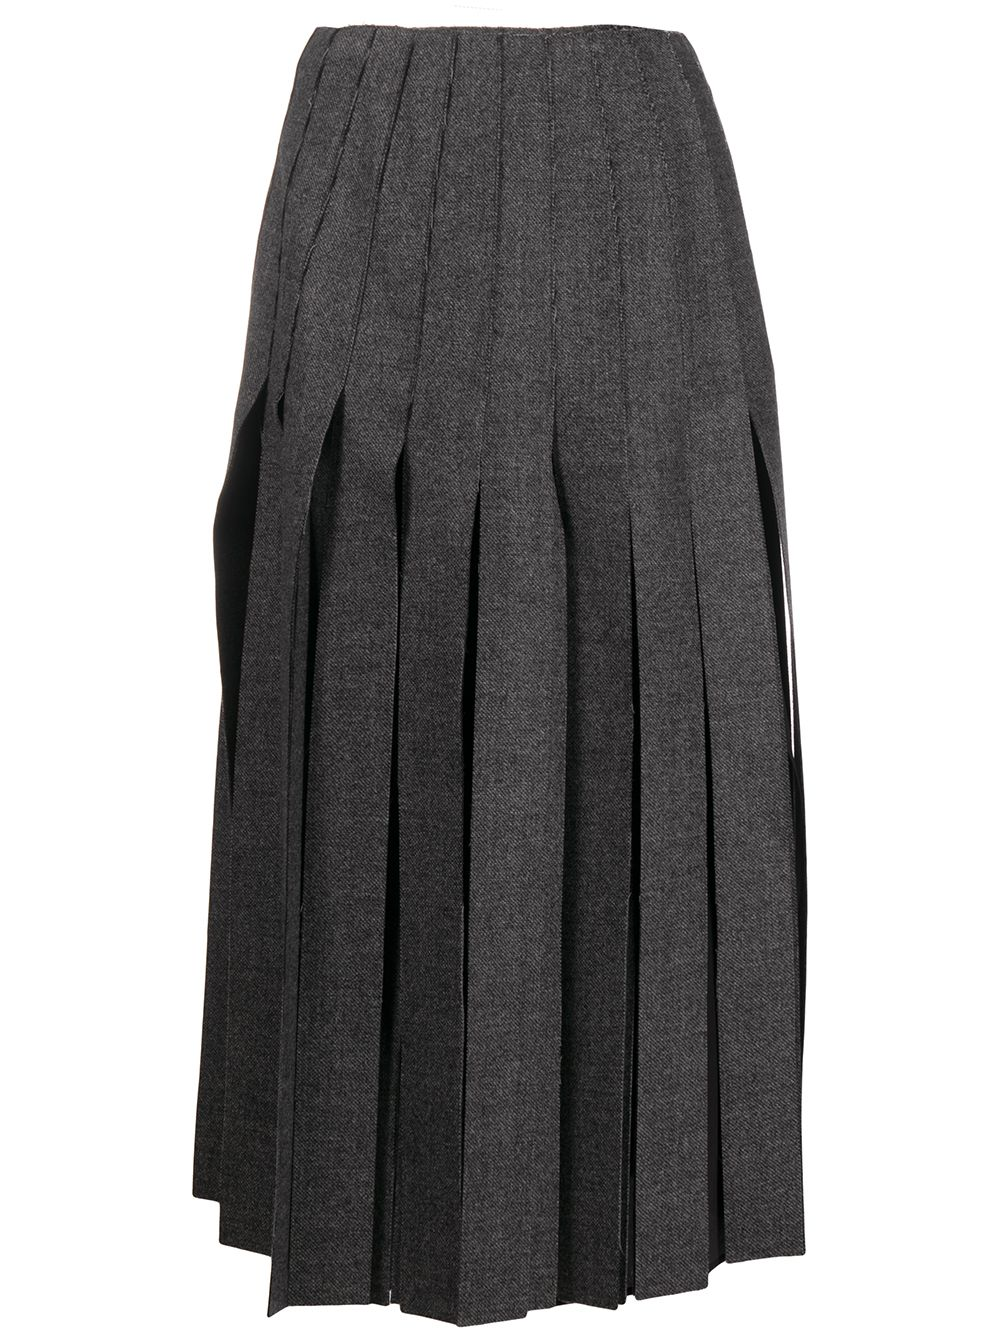 Picture of Prada | Skirt